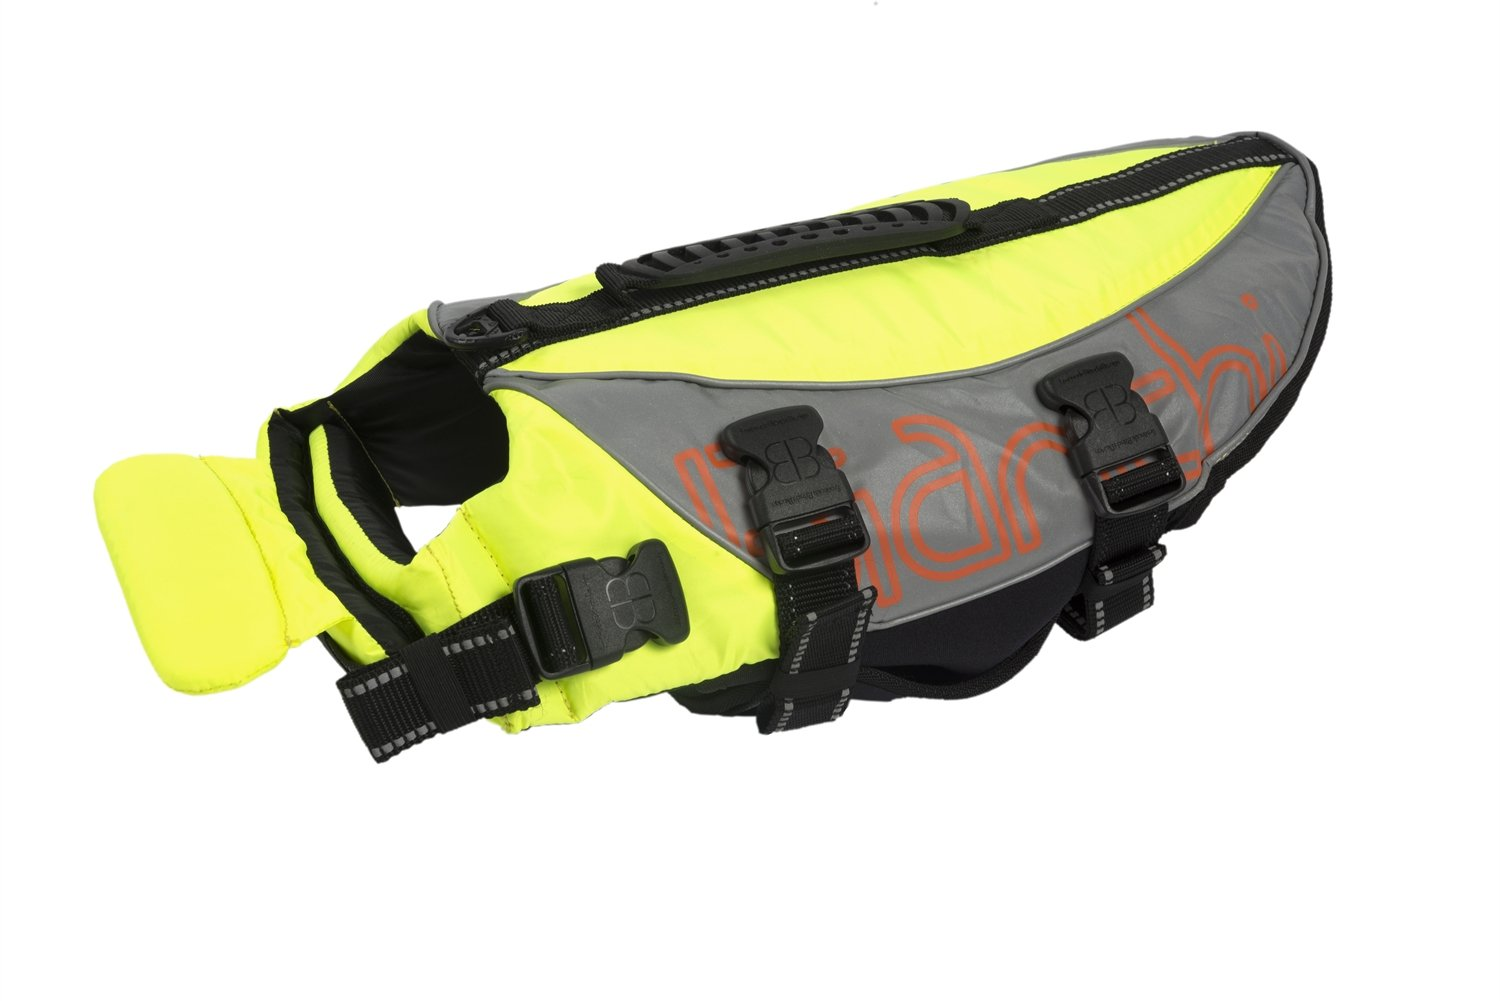 Petego Salty Dog Pet Life Vest, Medium, Fits Girth 27 to 32-Inch, Yellow